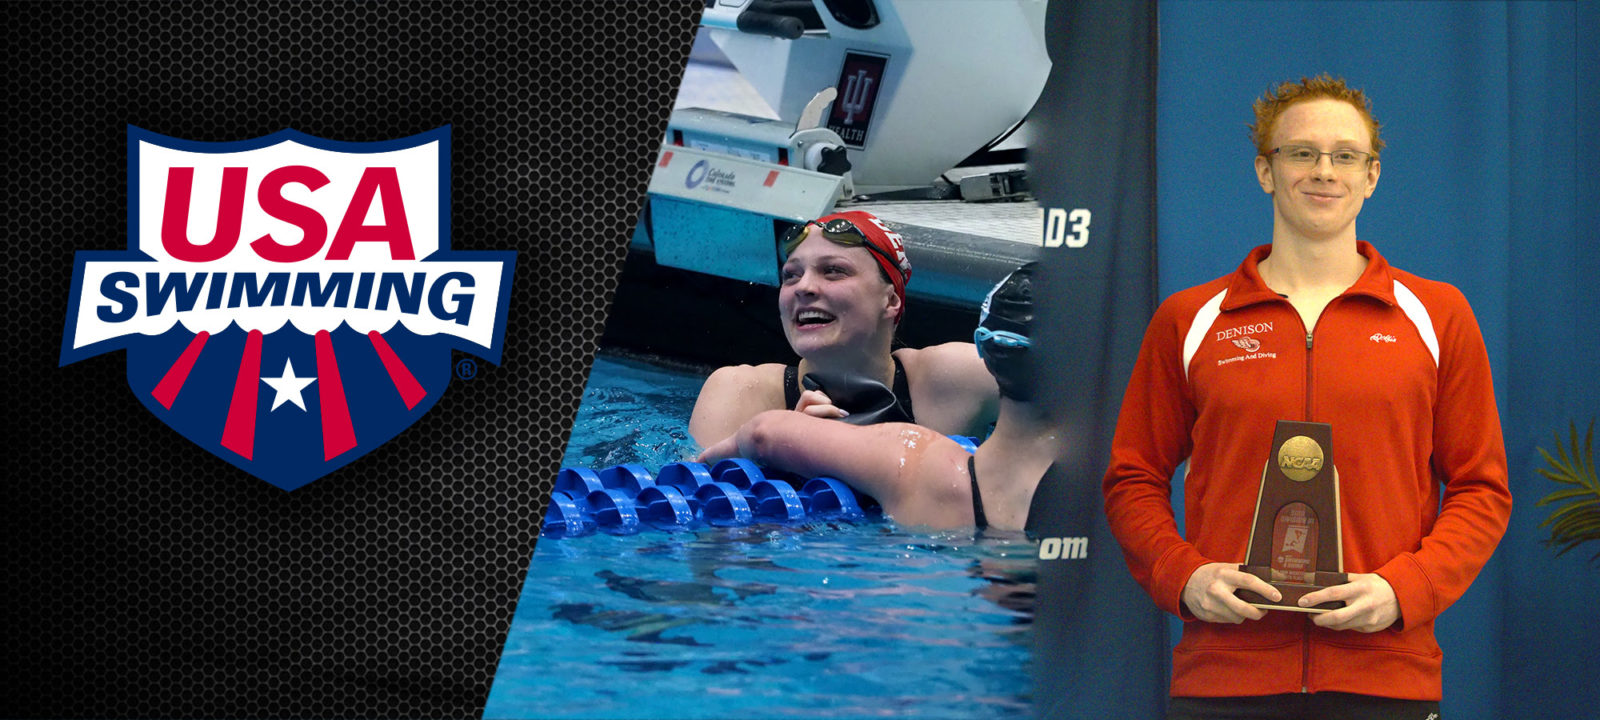 Denison Swimmers Kustritz, Kurlich Qualify for US Olympic Trials